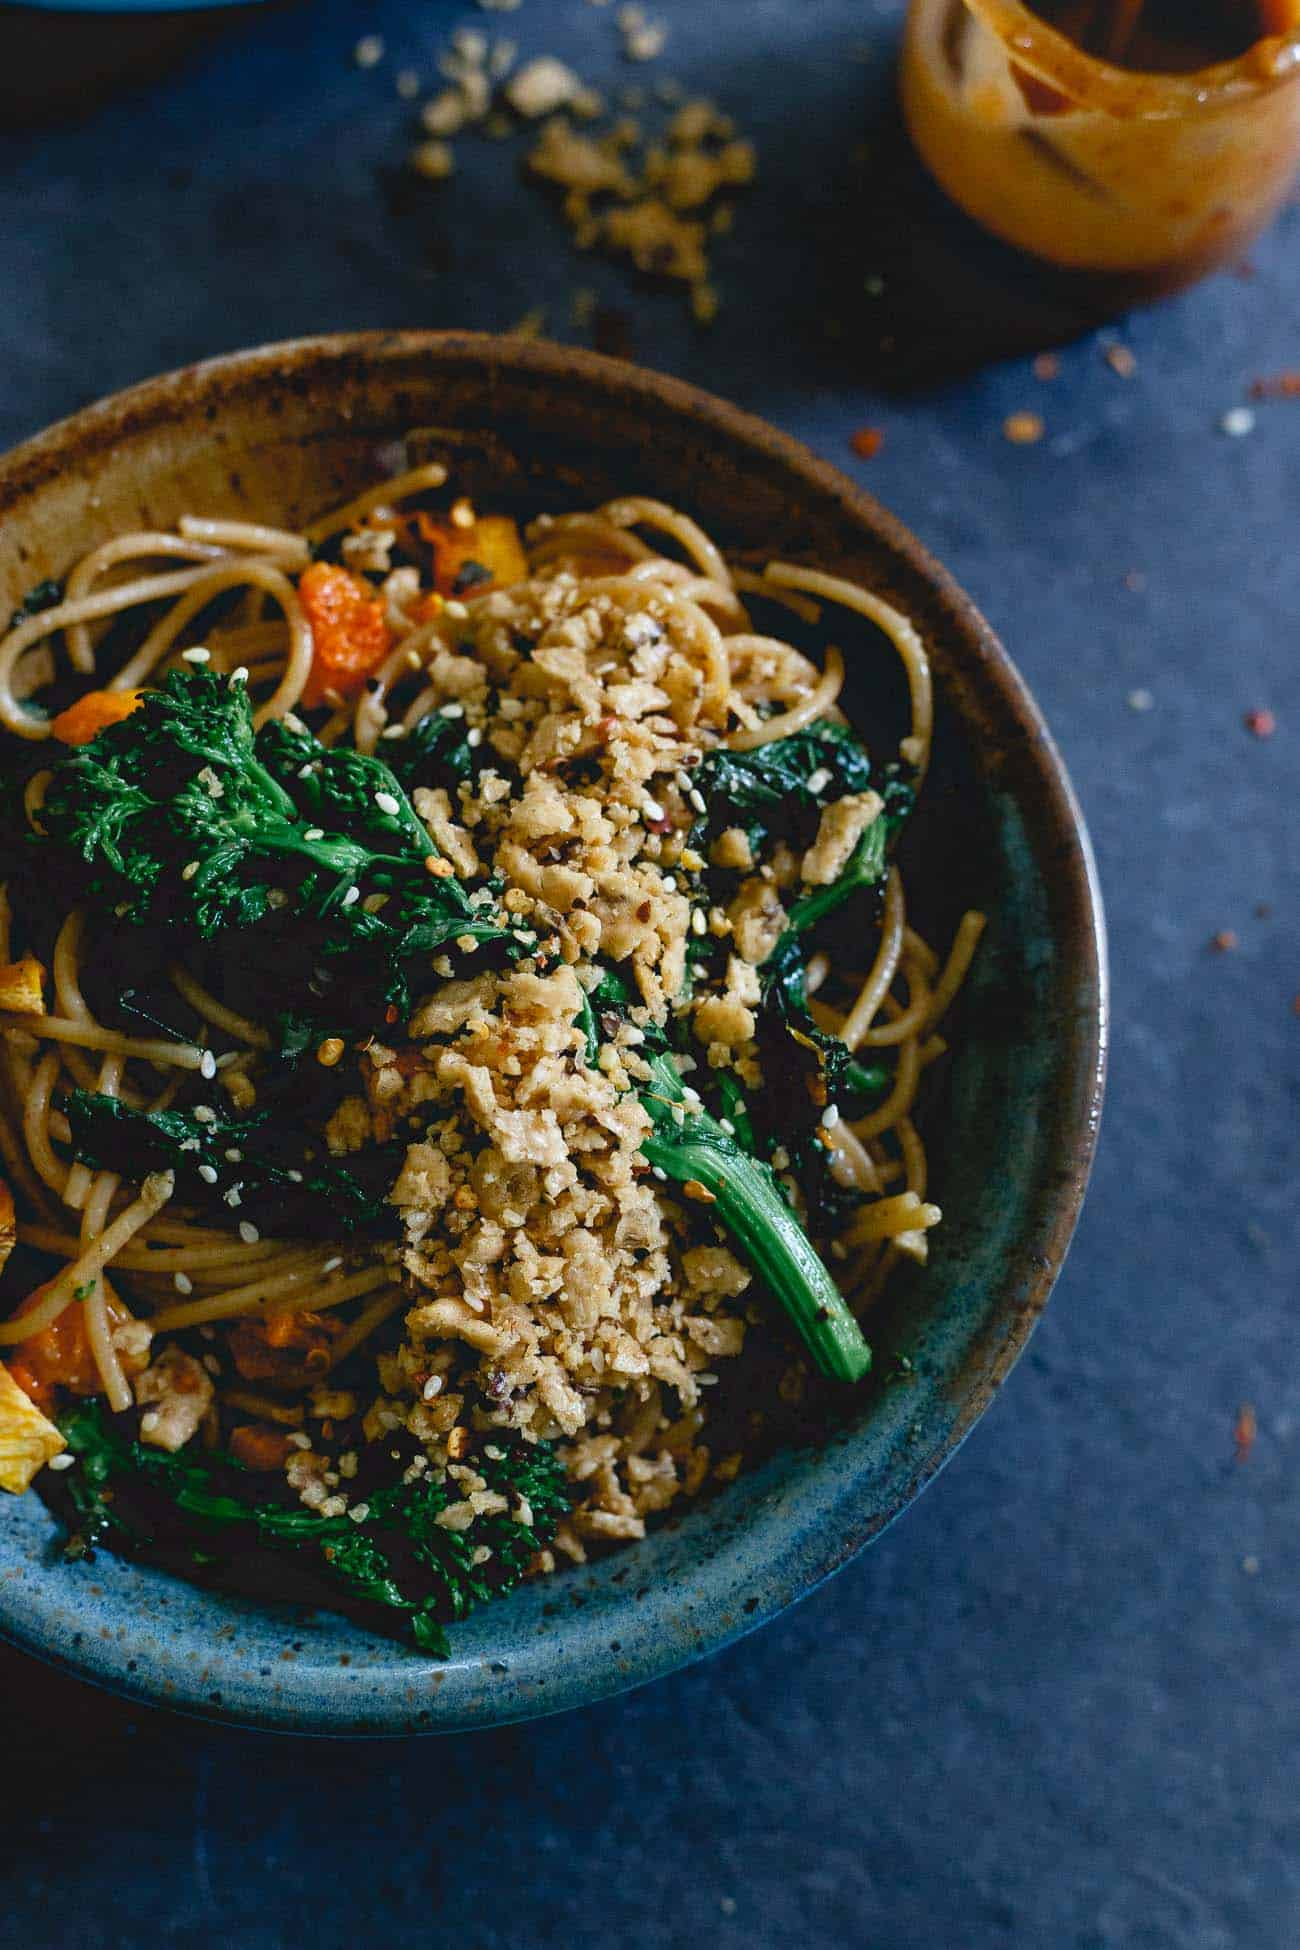 This fall pasta is filled with roasted butternut squash and broccoli rabe, tossed in a creamy almond butter sauce and topped with a buttery garlic cracker crumble.